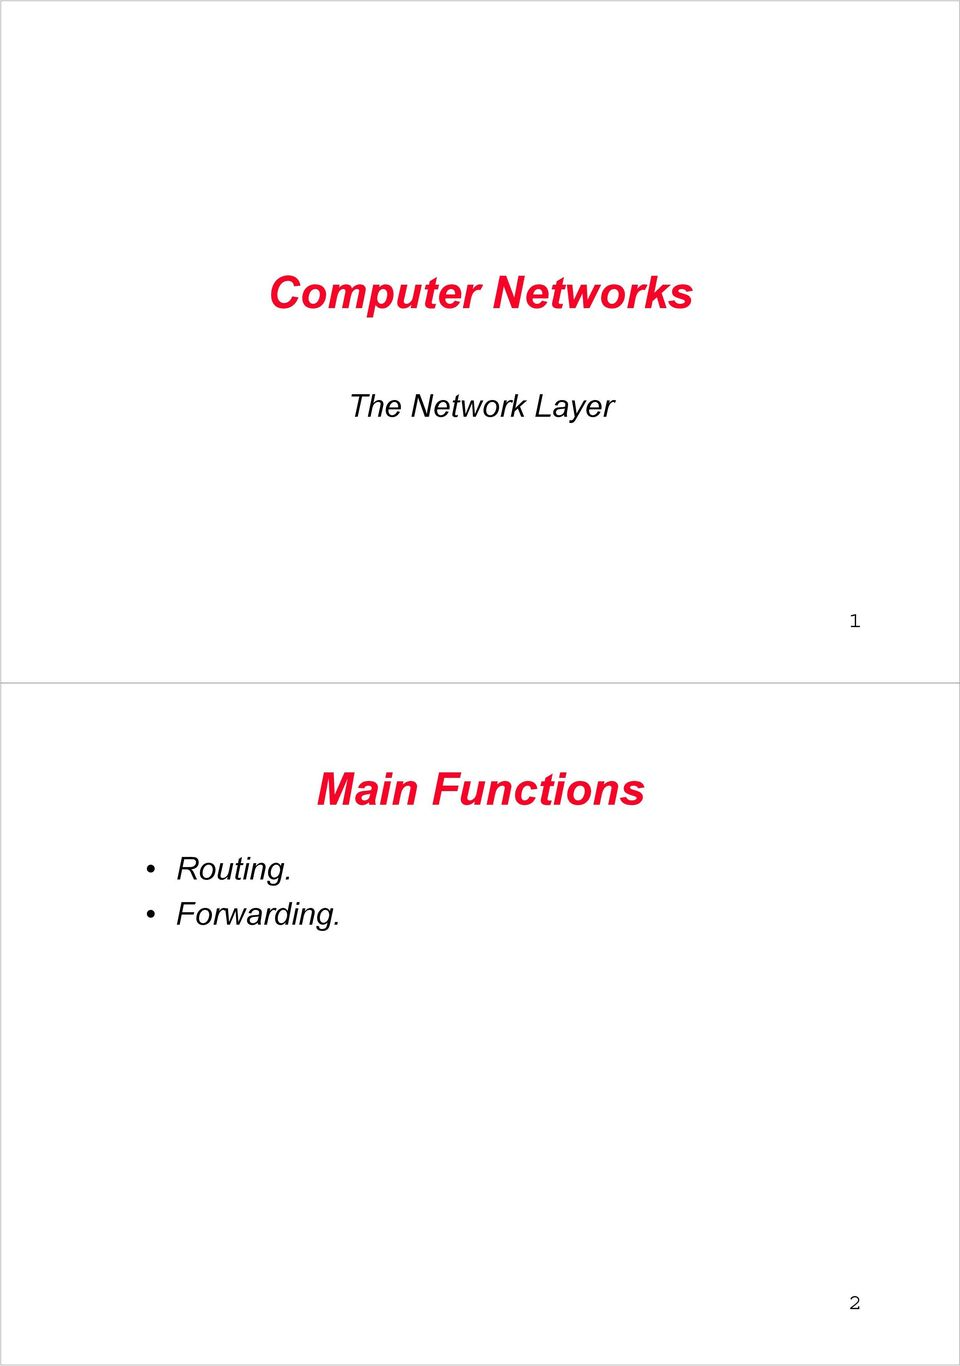 Computer Networks  Main Functions - PDF